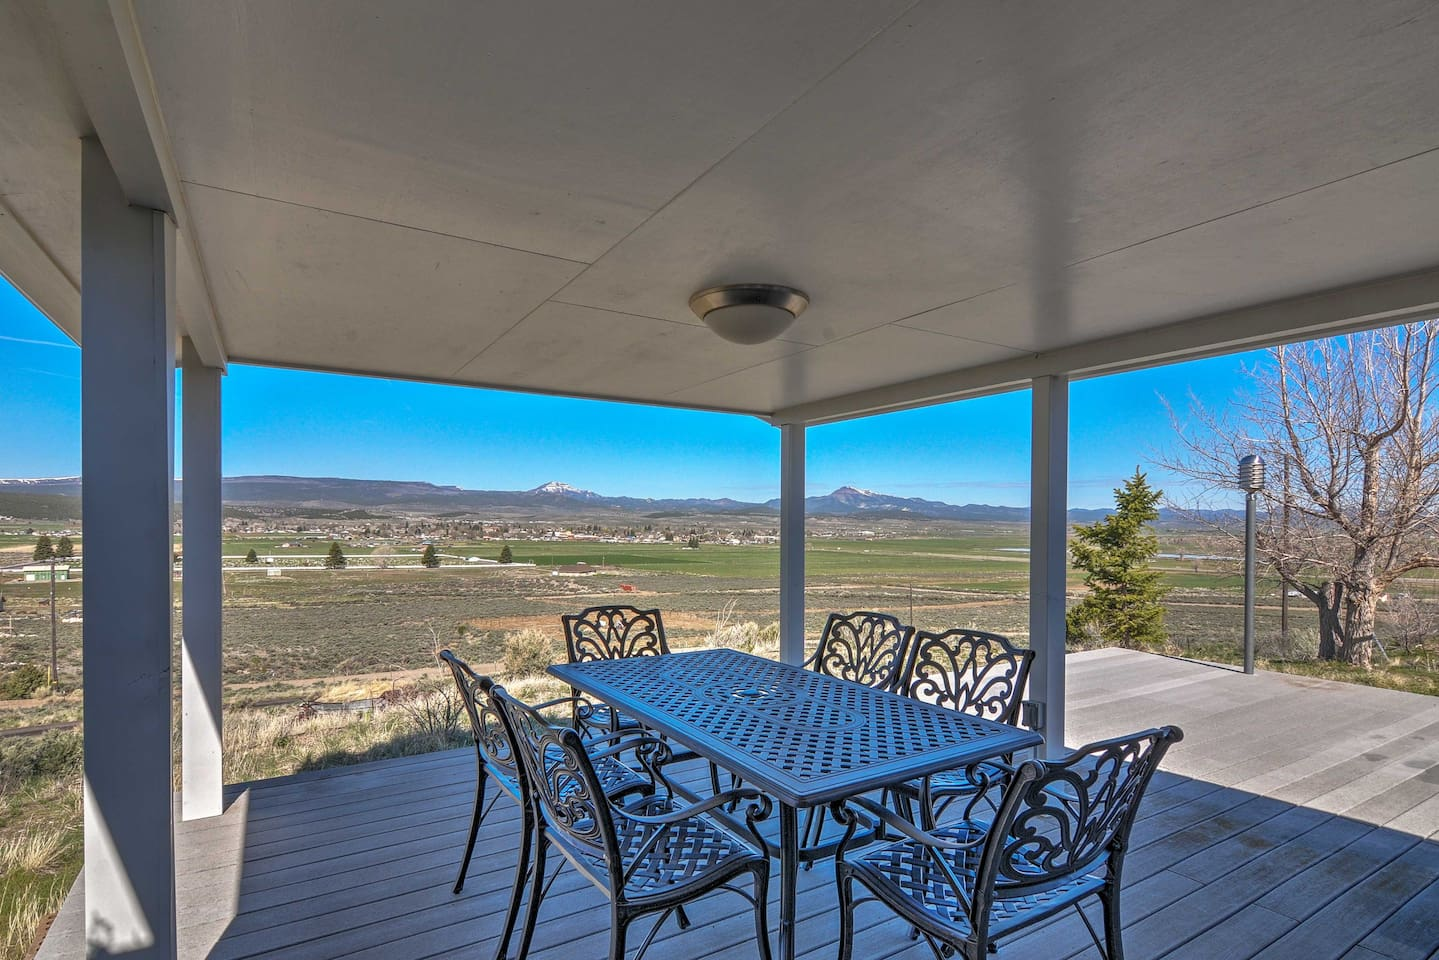 This vacation rental home is in Panguitch - Utah's hub of outdoor recreation!